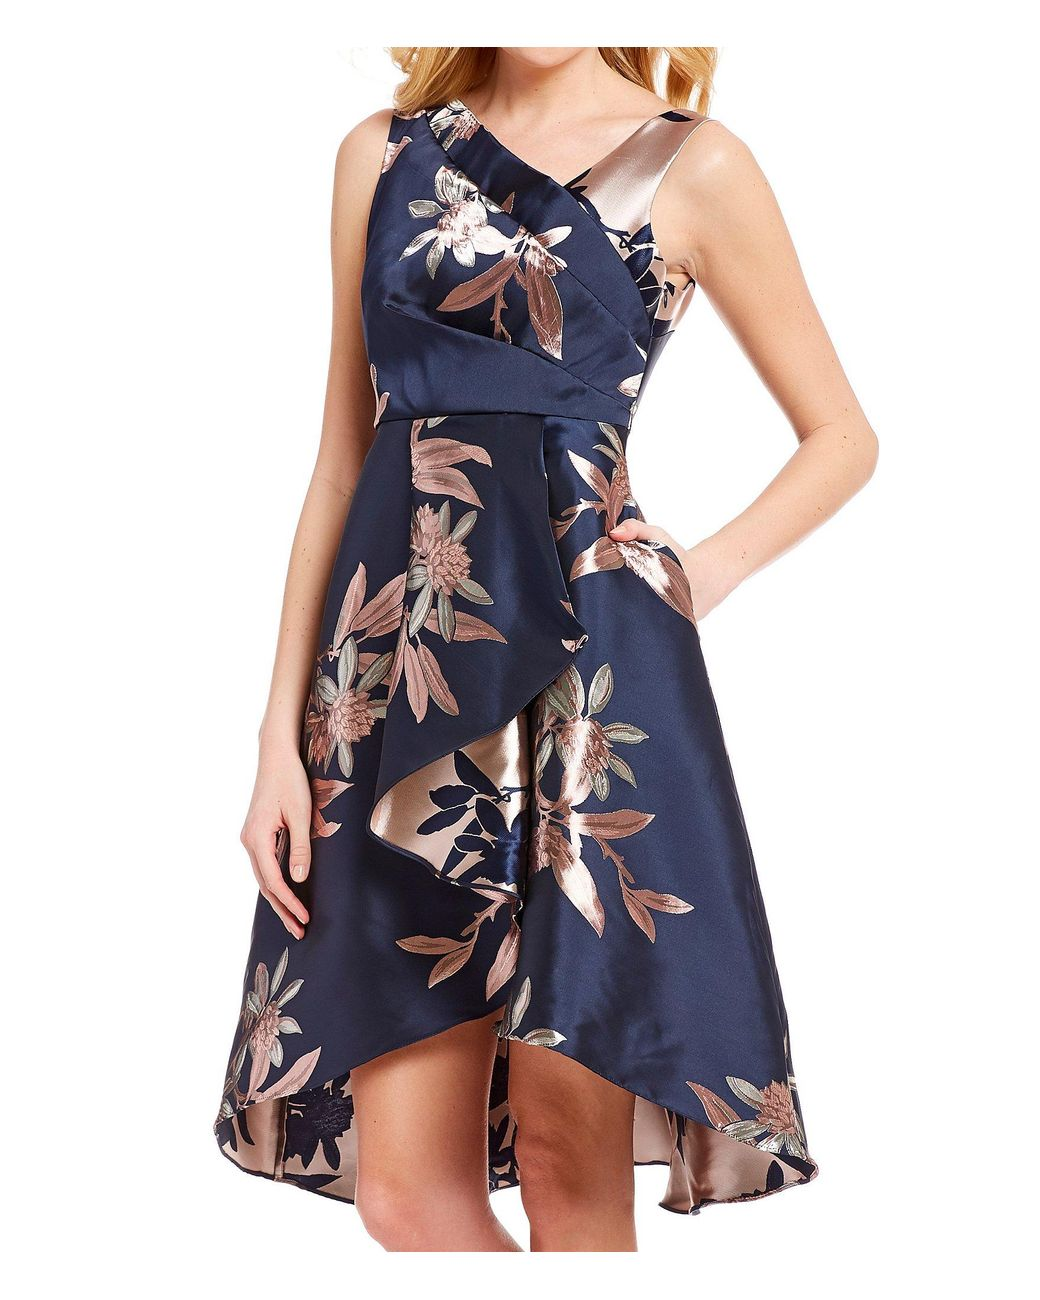 9709434e479aa Adrianna Papell Petite Size Floral Print Jacquard Sleeveless Cascade Hi-low  Dress in Blue - Save 6% - Lyst